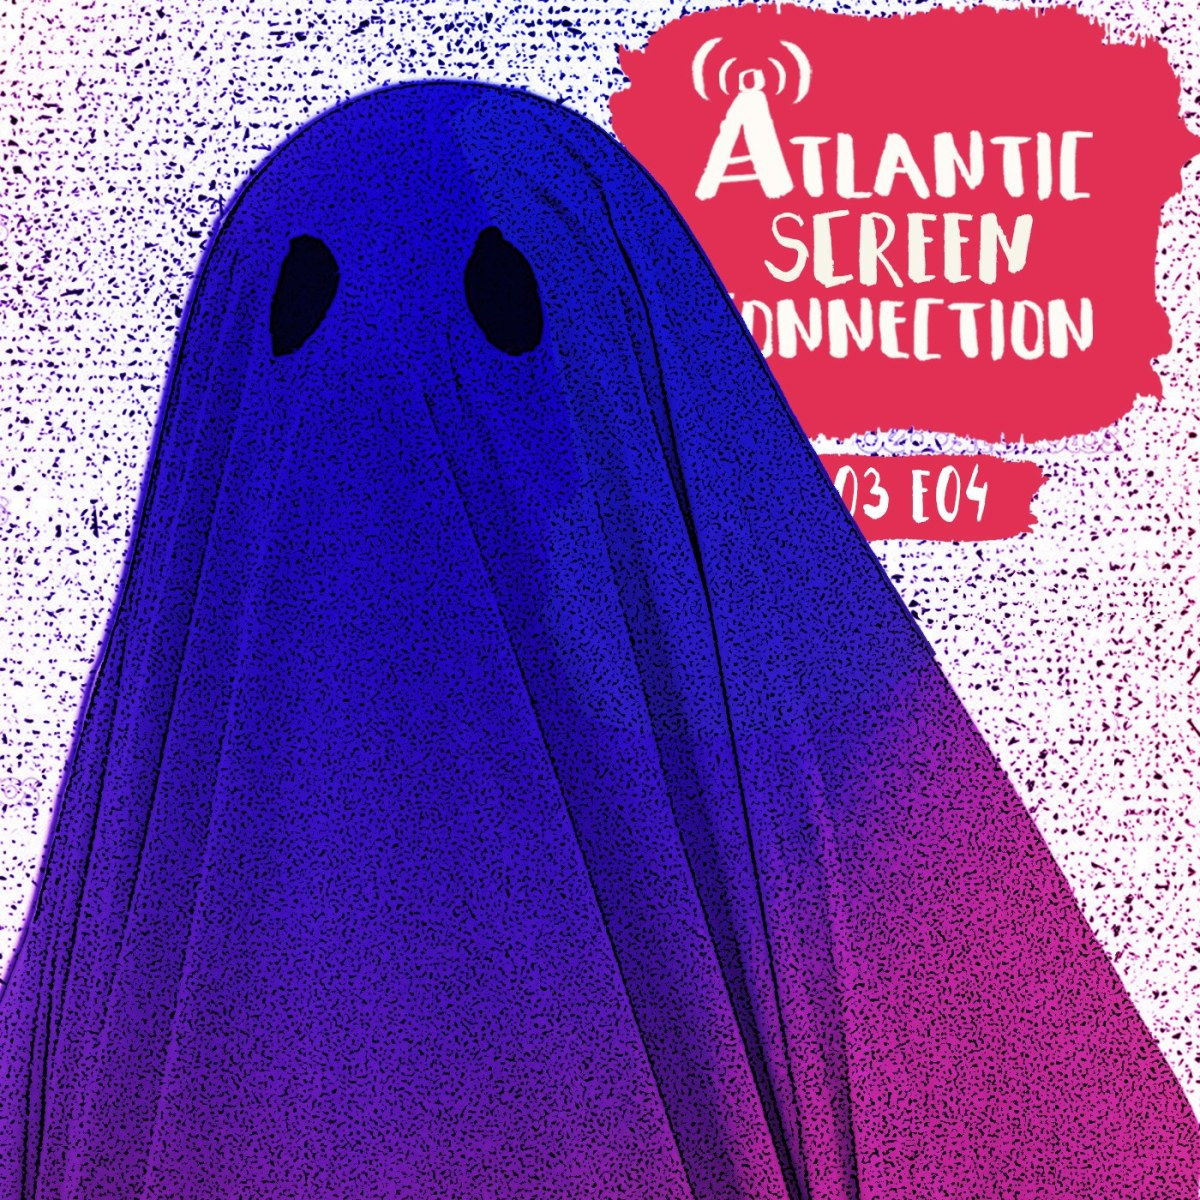 PODCAST: A GHOST STORY(S03E04)